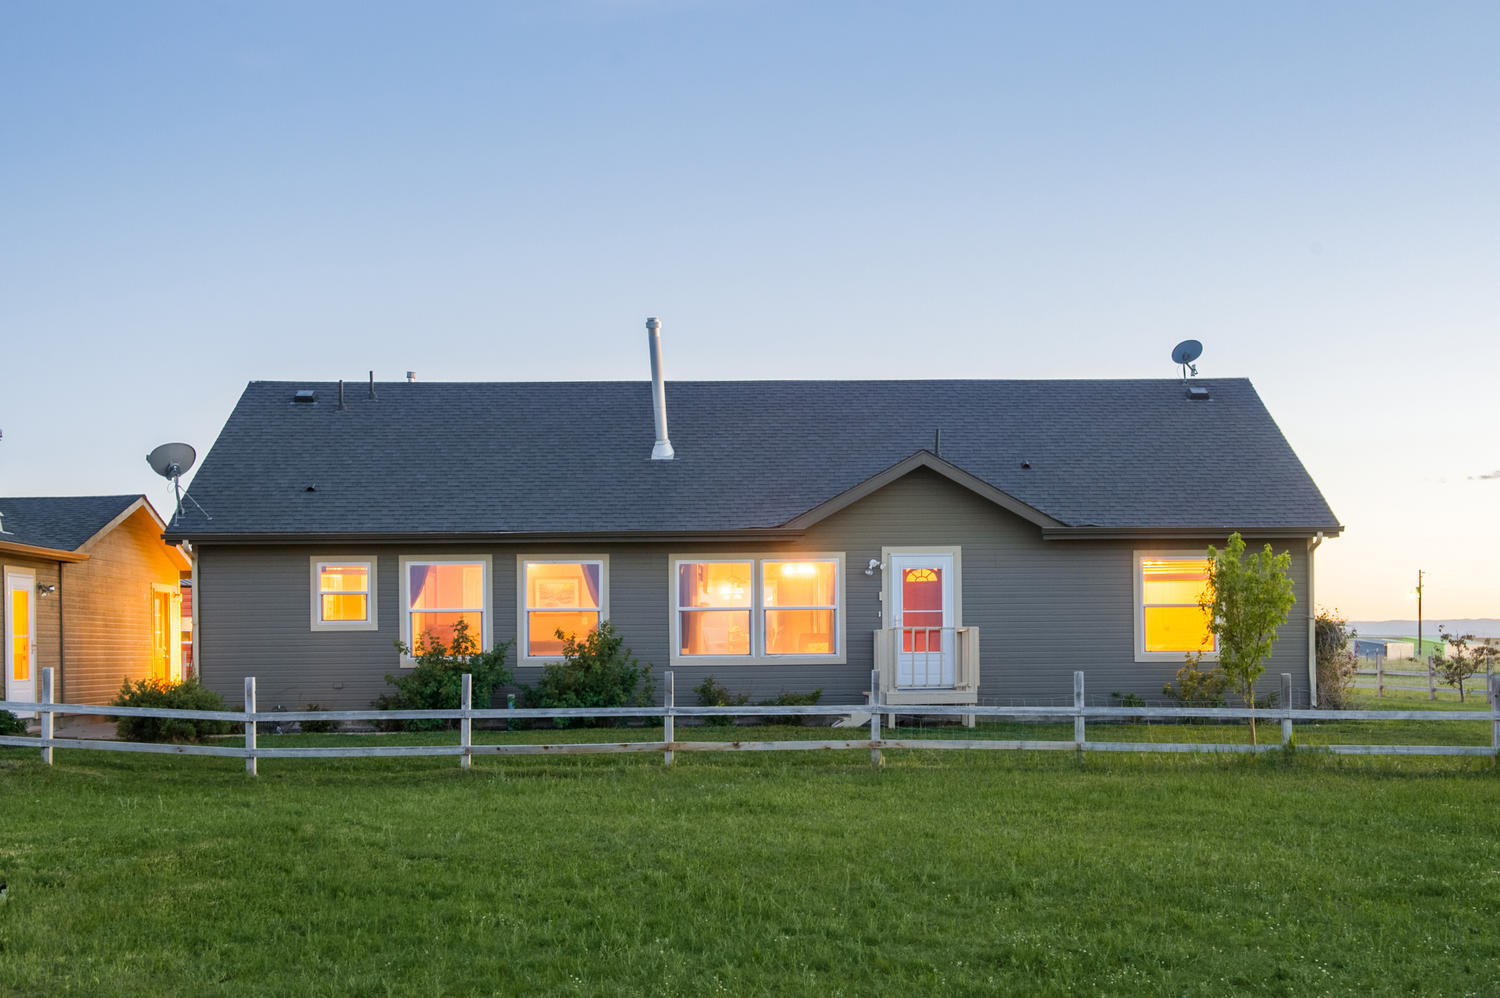 Single Family Home for Active at Fall in love with this Colorado country charmer on 5 acres in Elbert 22745 Eagle Dr Elbert, Colorado 80106 United States